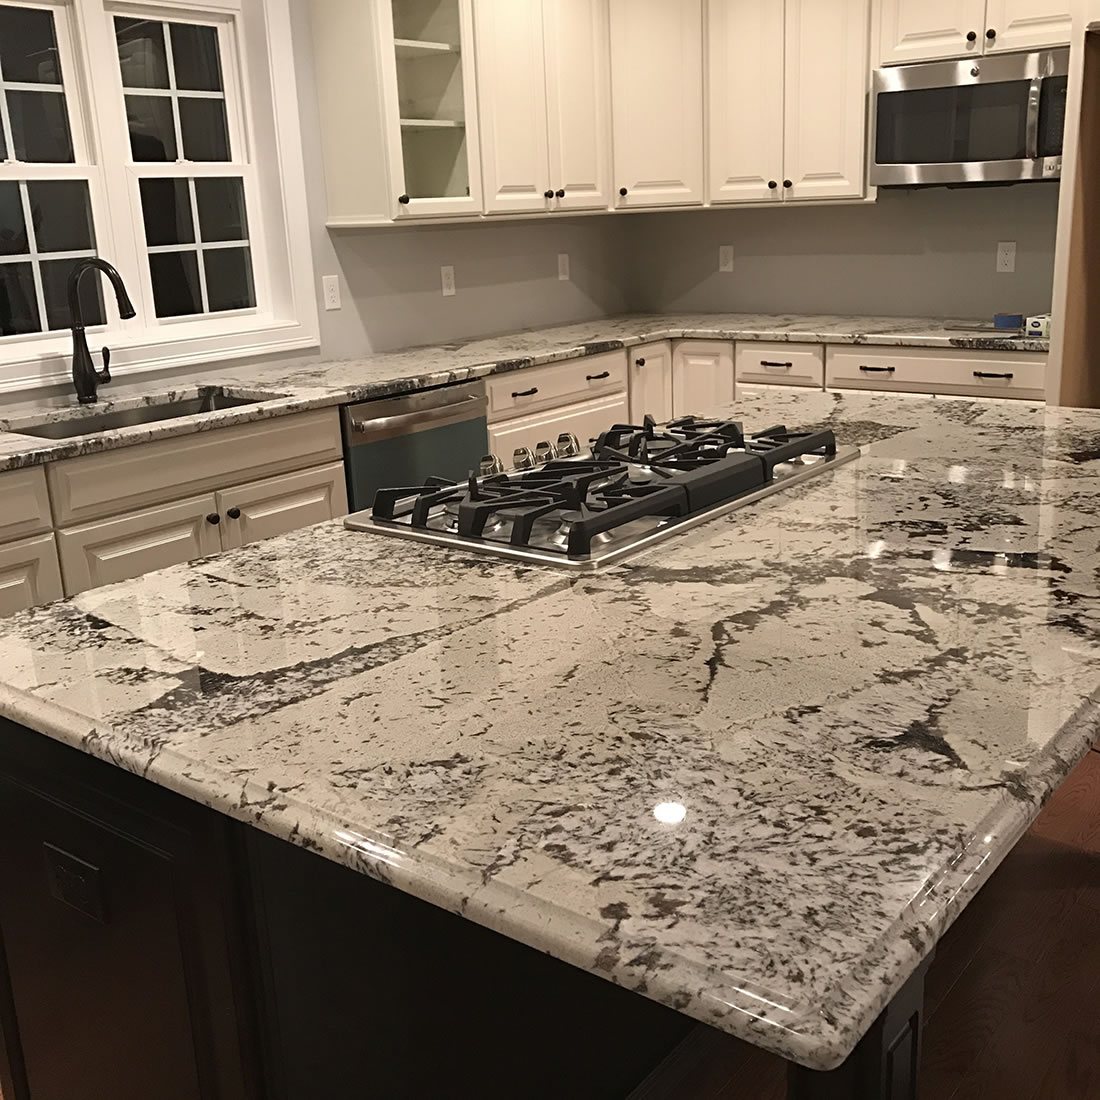 Image Result For Soapstone Colors For Countertopa